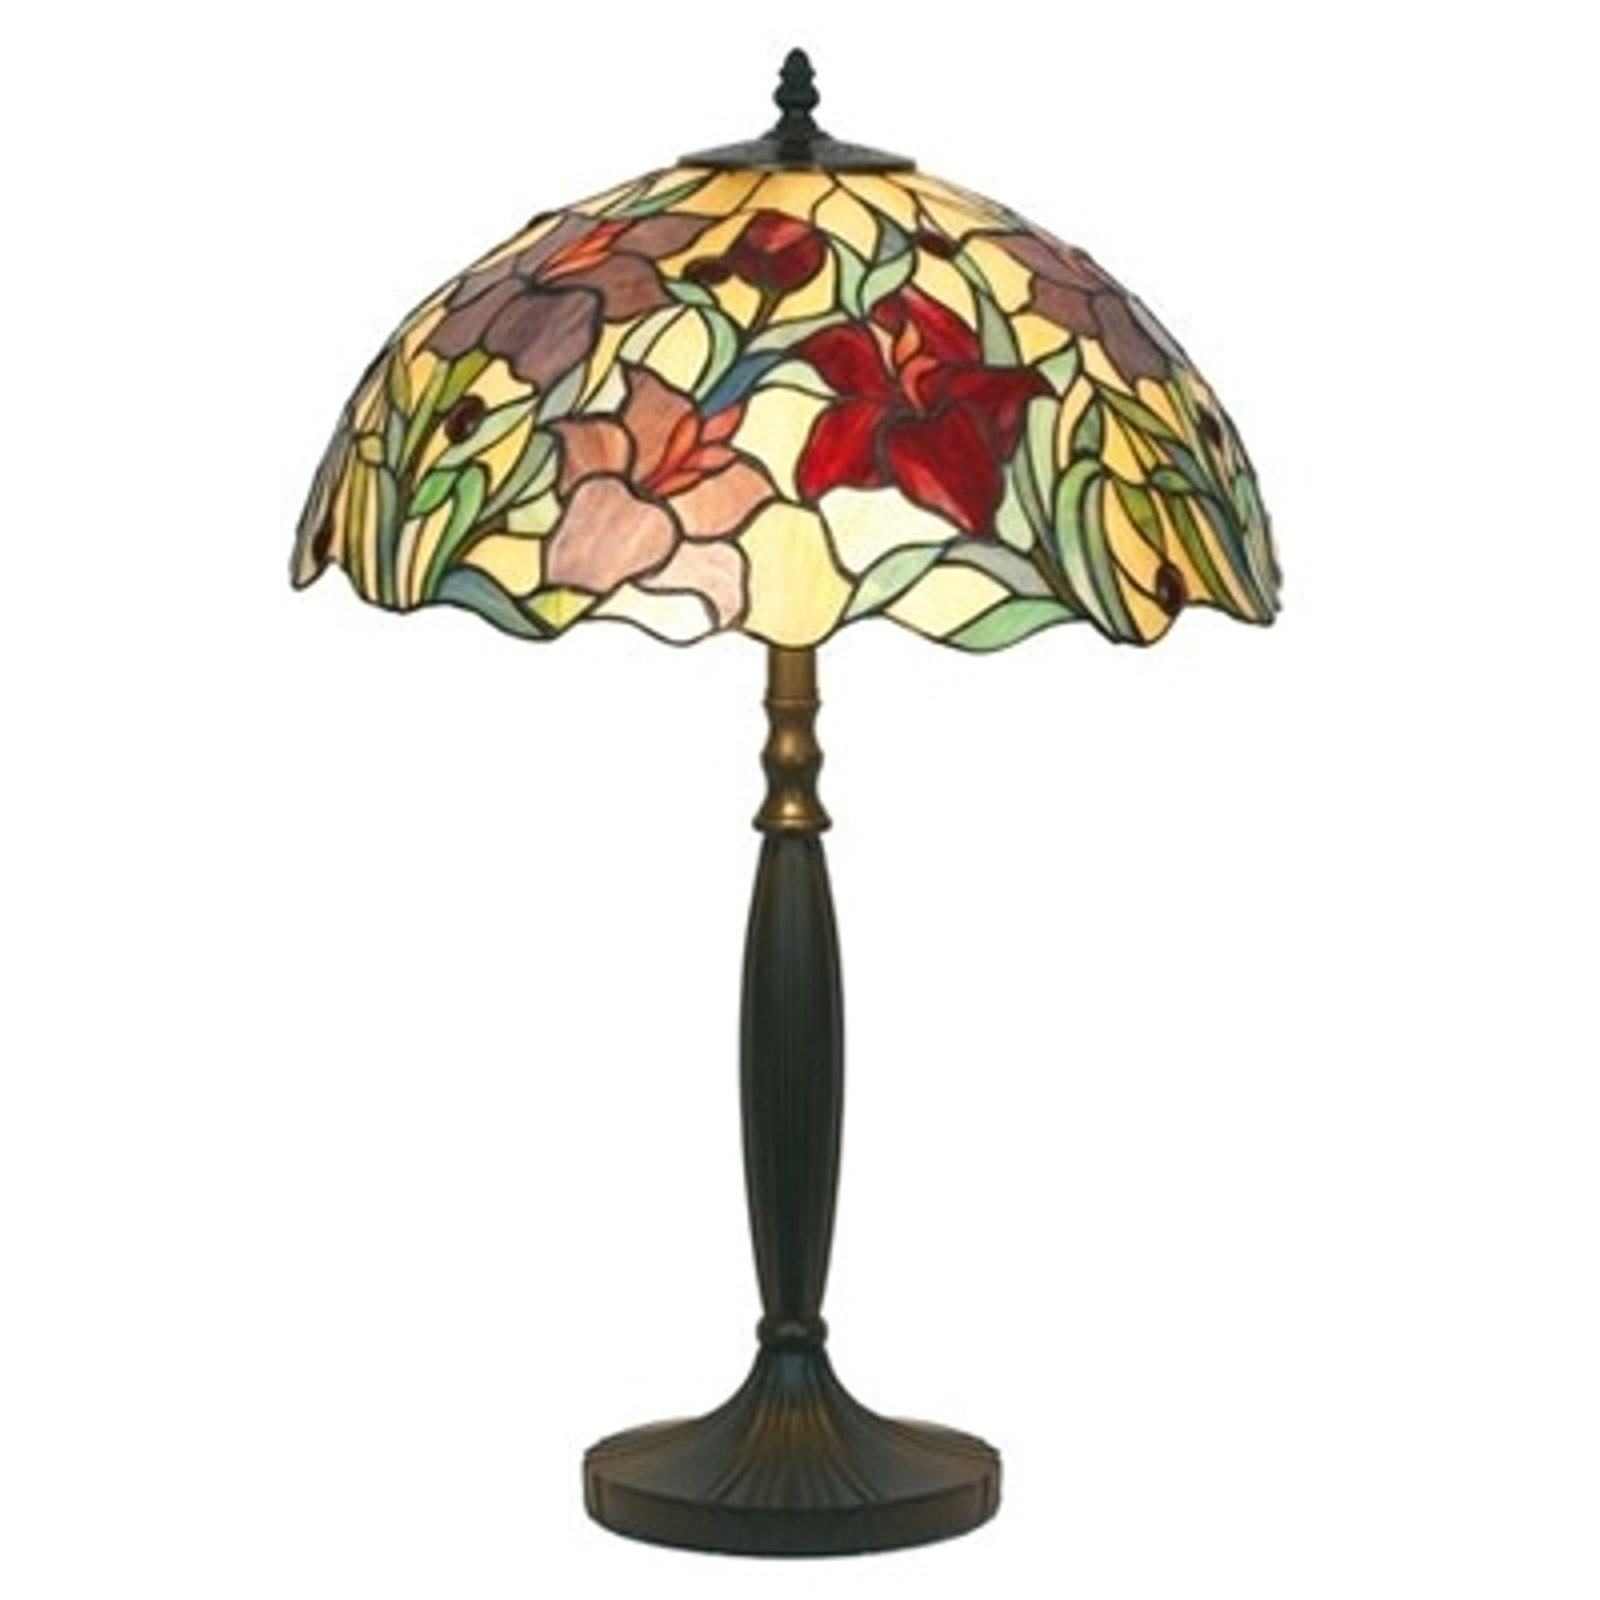 Floral table lamp ATHINA, handmade, 62 cm_1032138_1